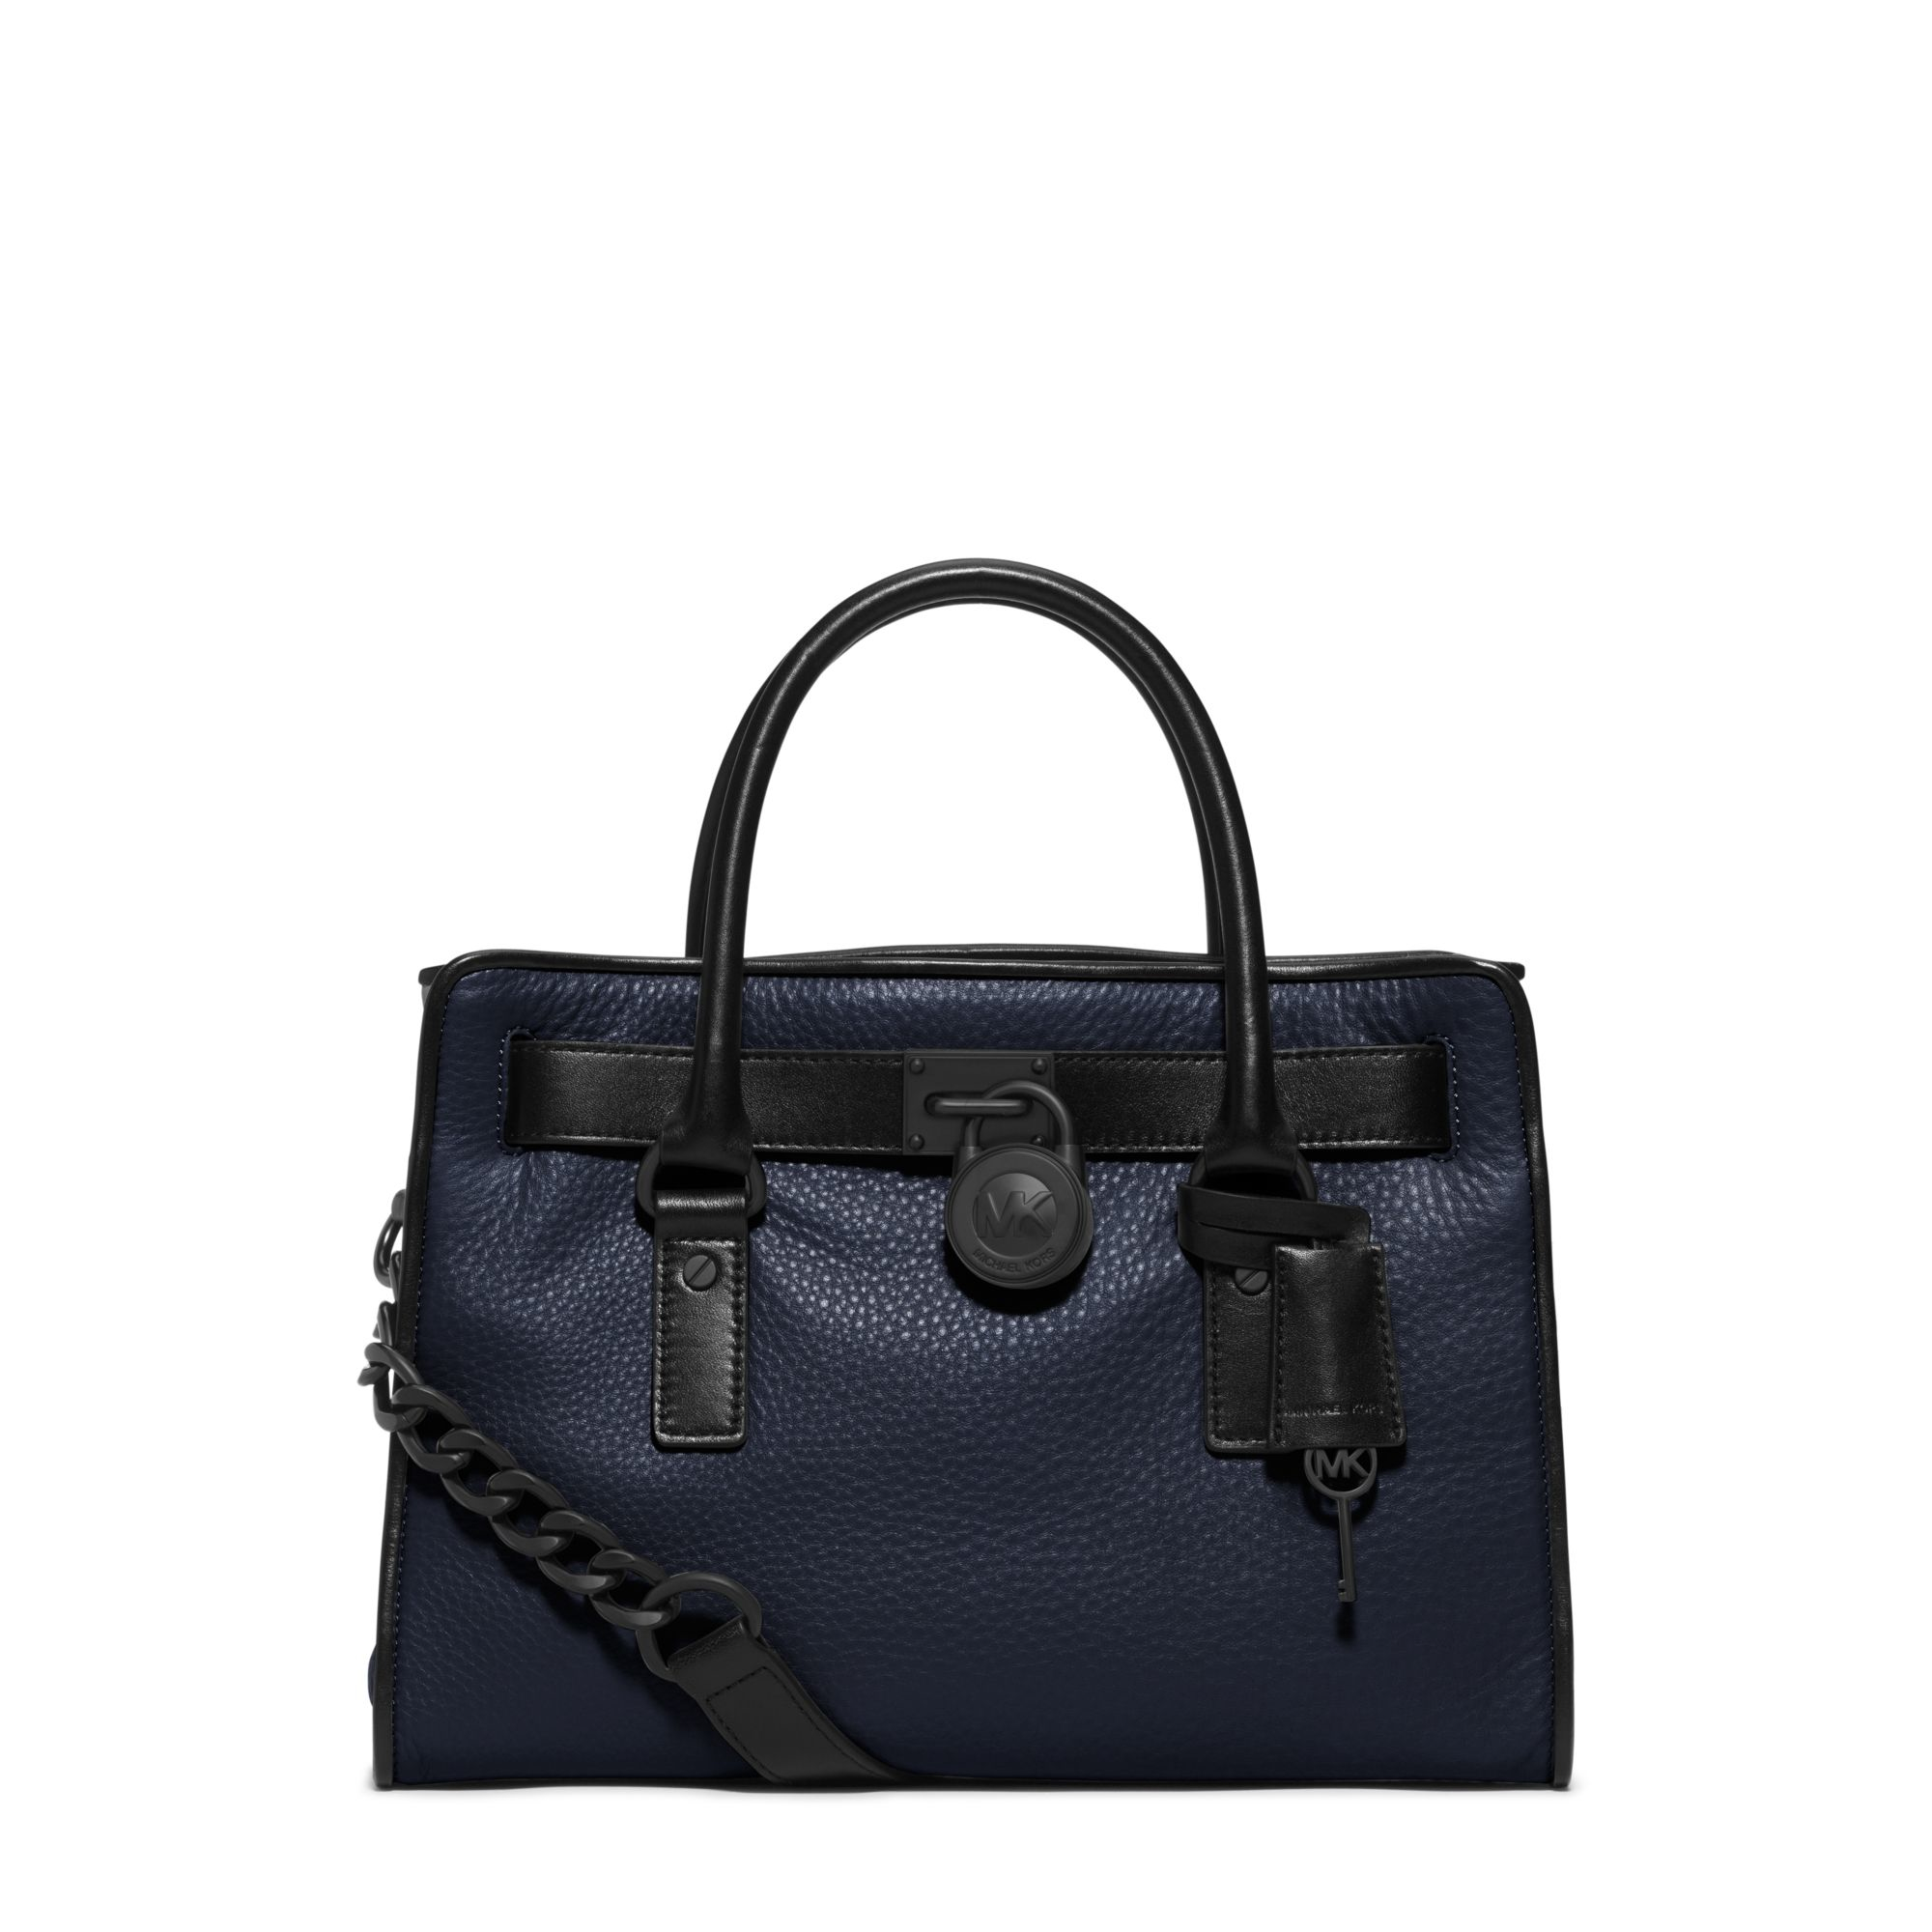 2bd893ca2d2e Lyst - Michael Kors Hamilton Two-tone Leather Satchel in Blue